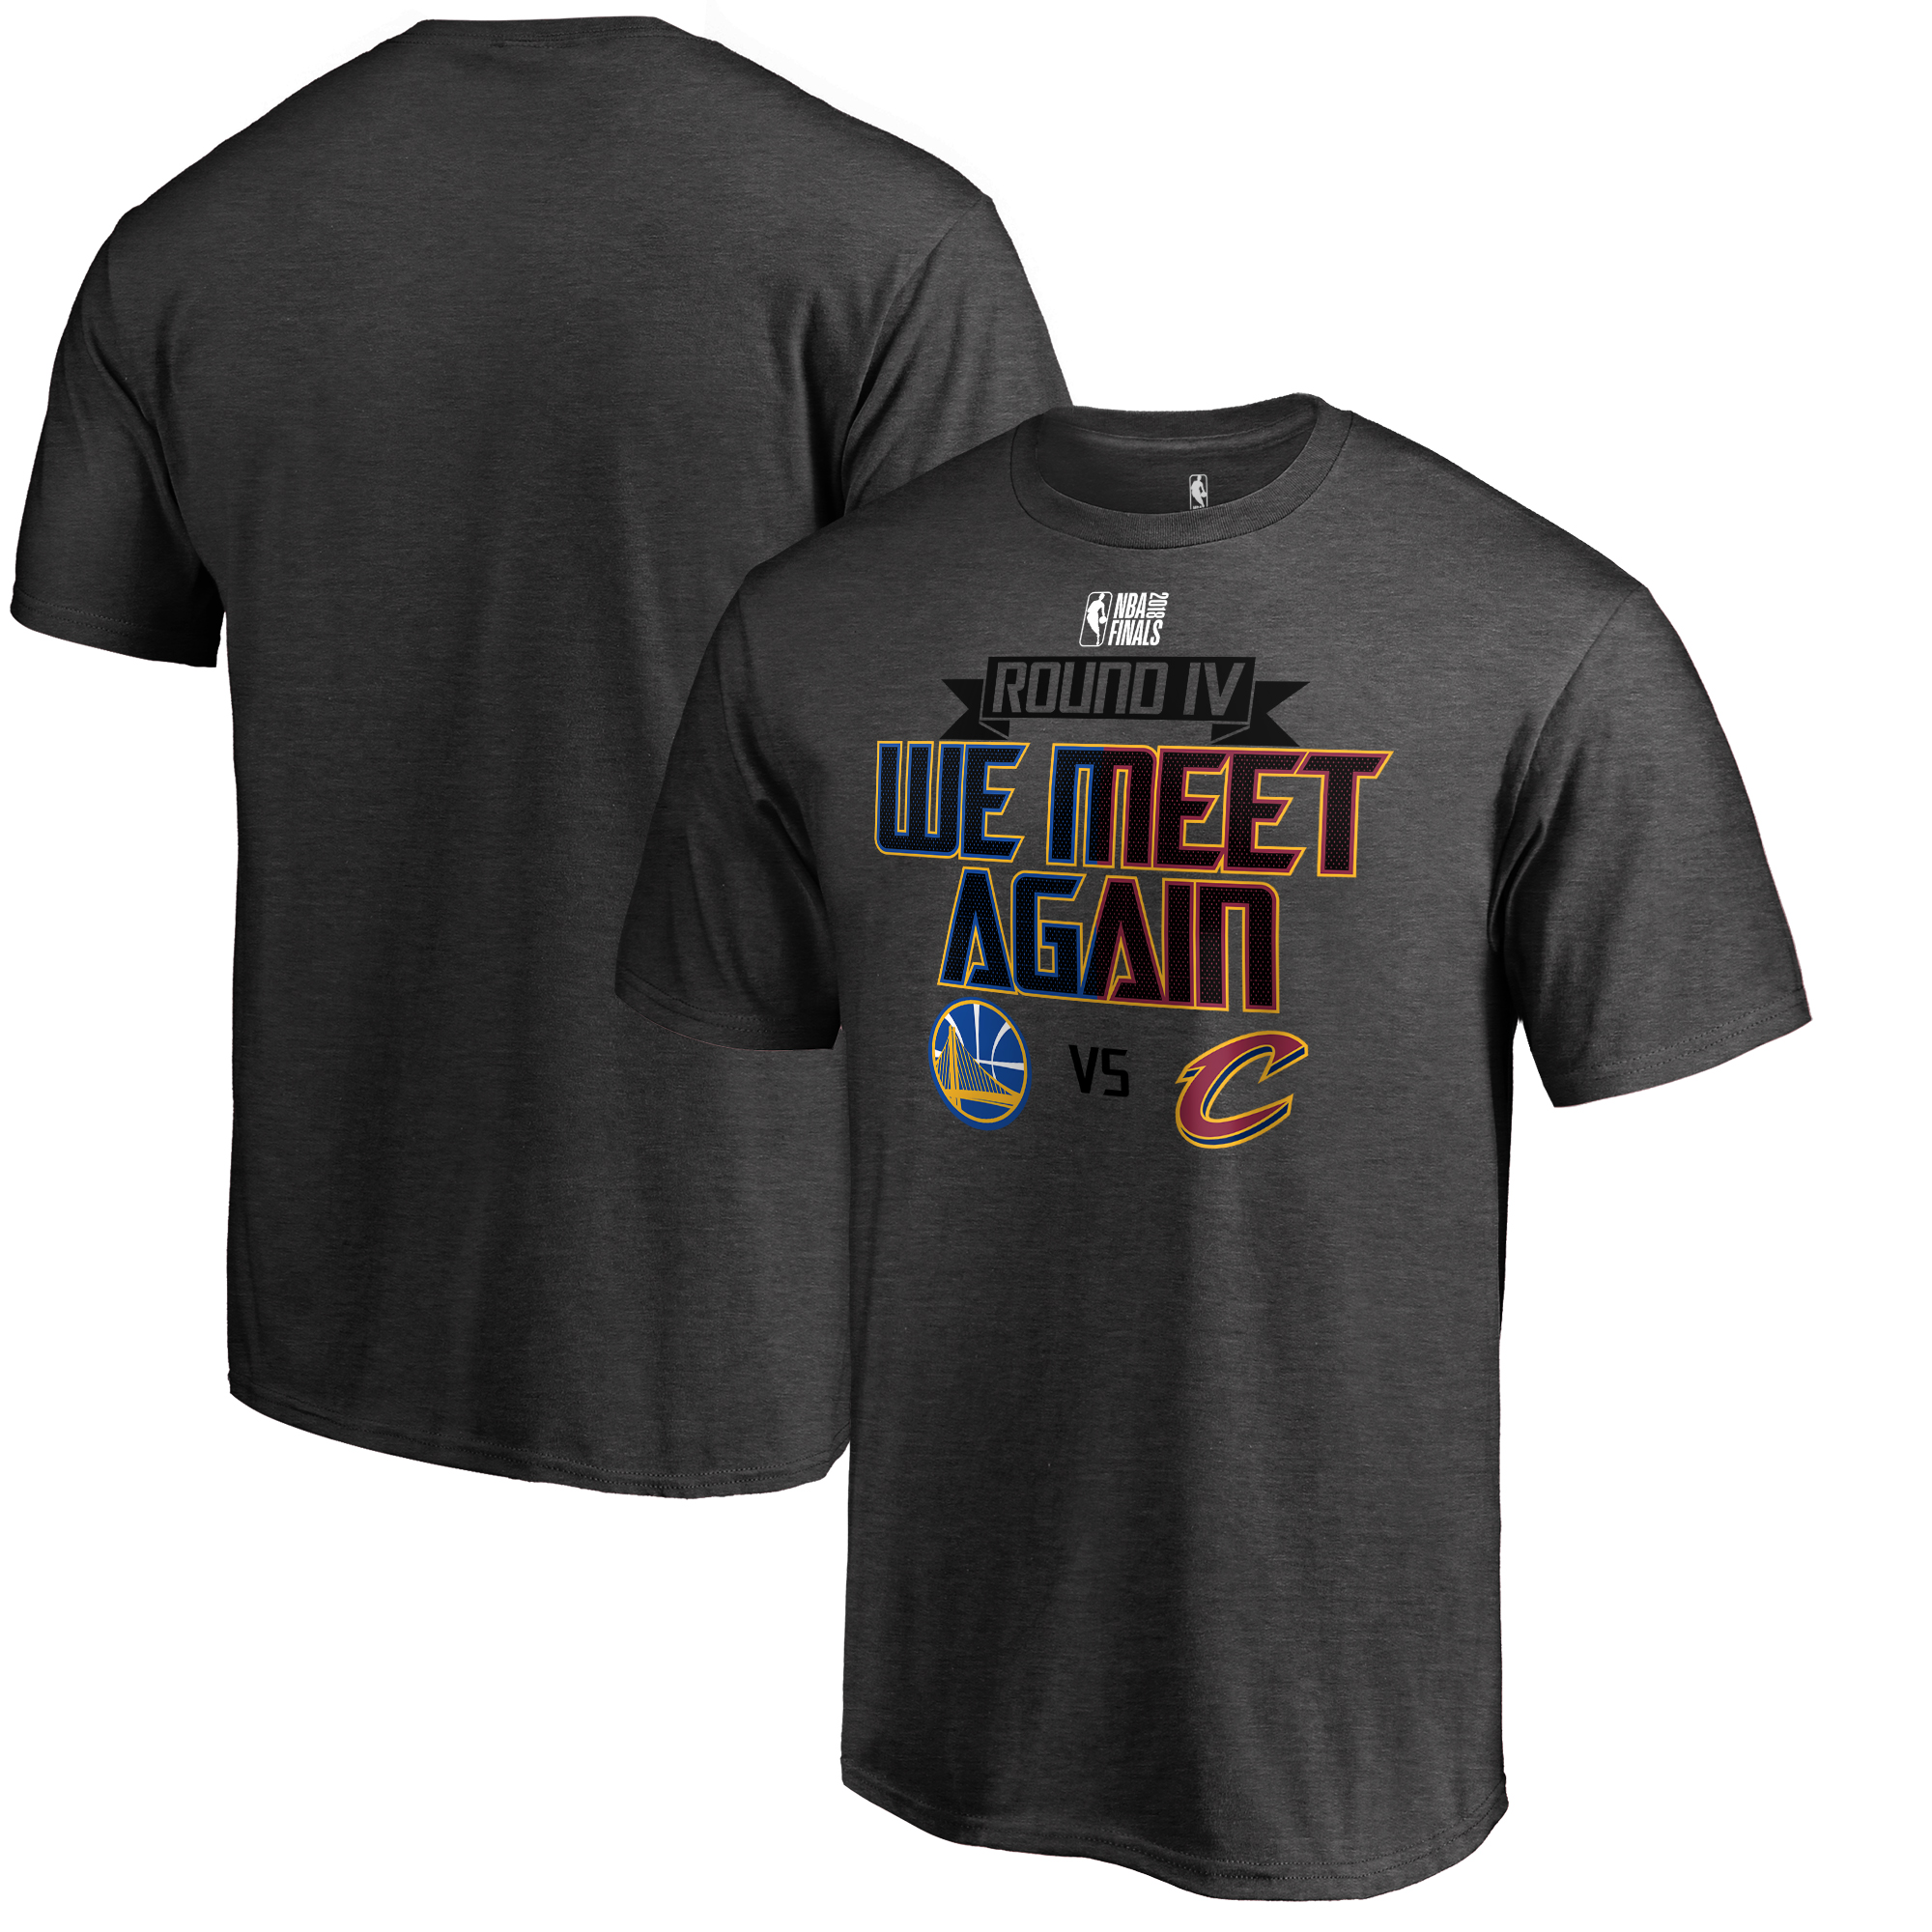 Golden State Warriors vs. Cleveland Cavaliers Fanatics Branded 2018 NBA Finals Bound Dueling Round IV T-Shirt - Heather Gray